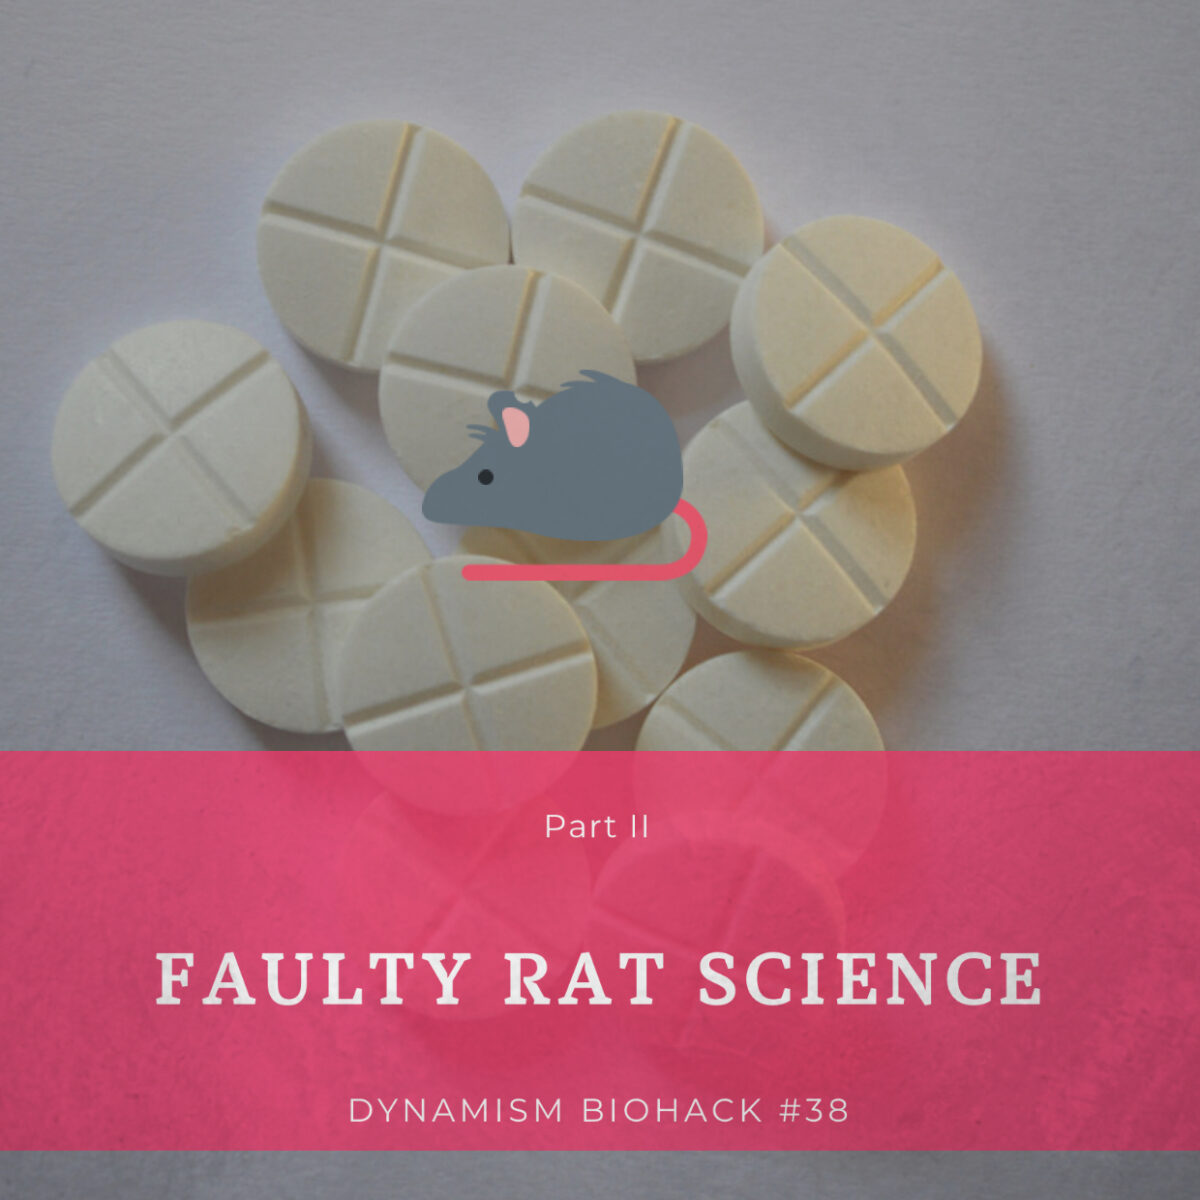 #38: Faulty Rat Science Part II